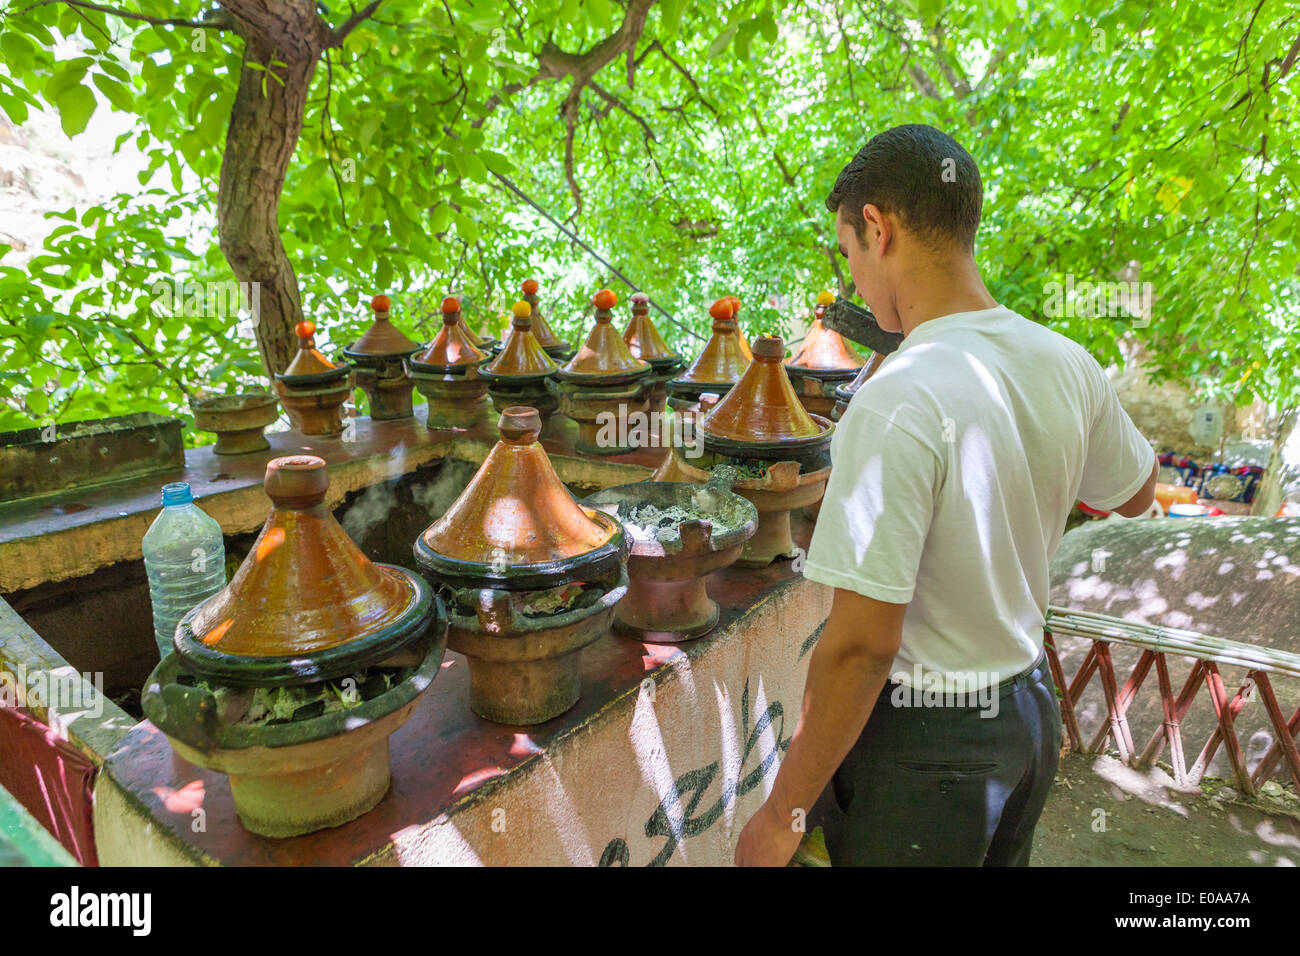 Man preparing tajine Moroccan speciality, in a typical pot, Ourika Valley, Morocco. - Stock Image